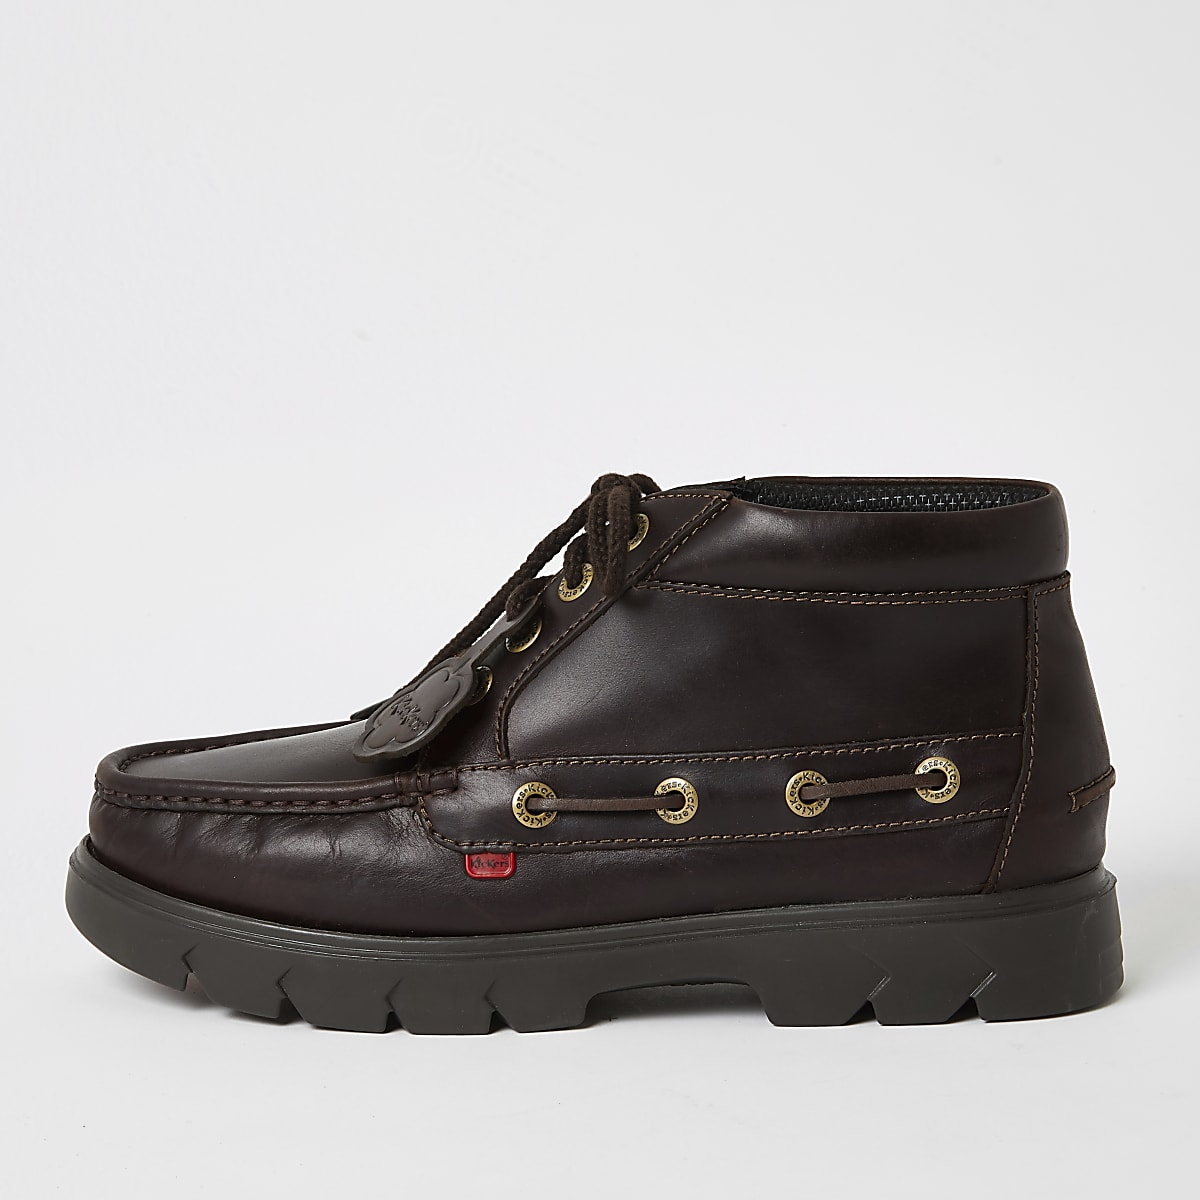 Kickers brown leather lace-up shoes